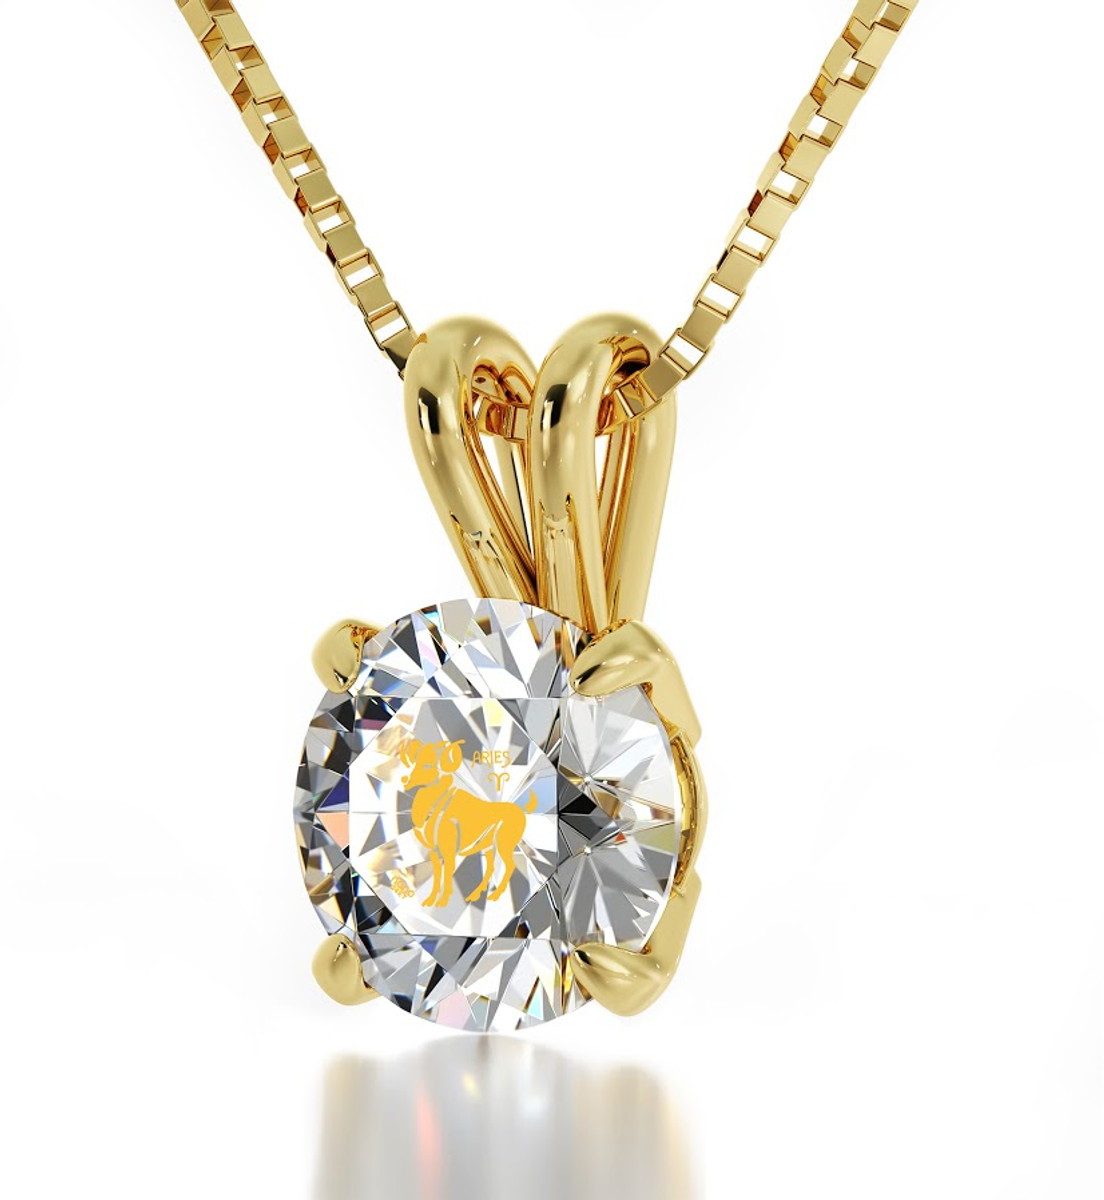 Inspirational Jewelry Aries Gold Necklace